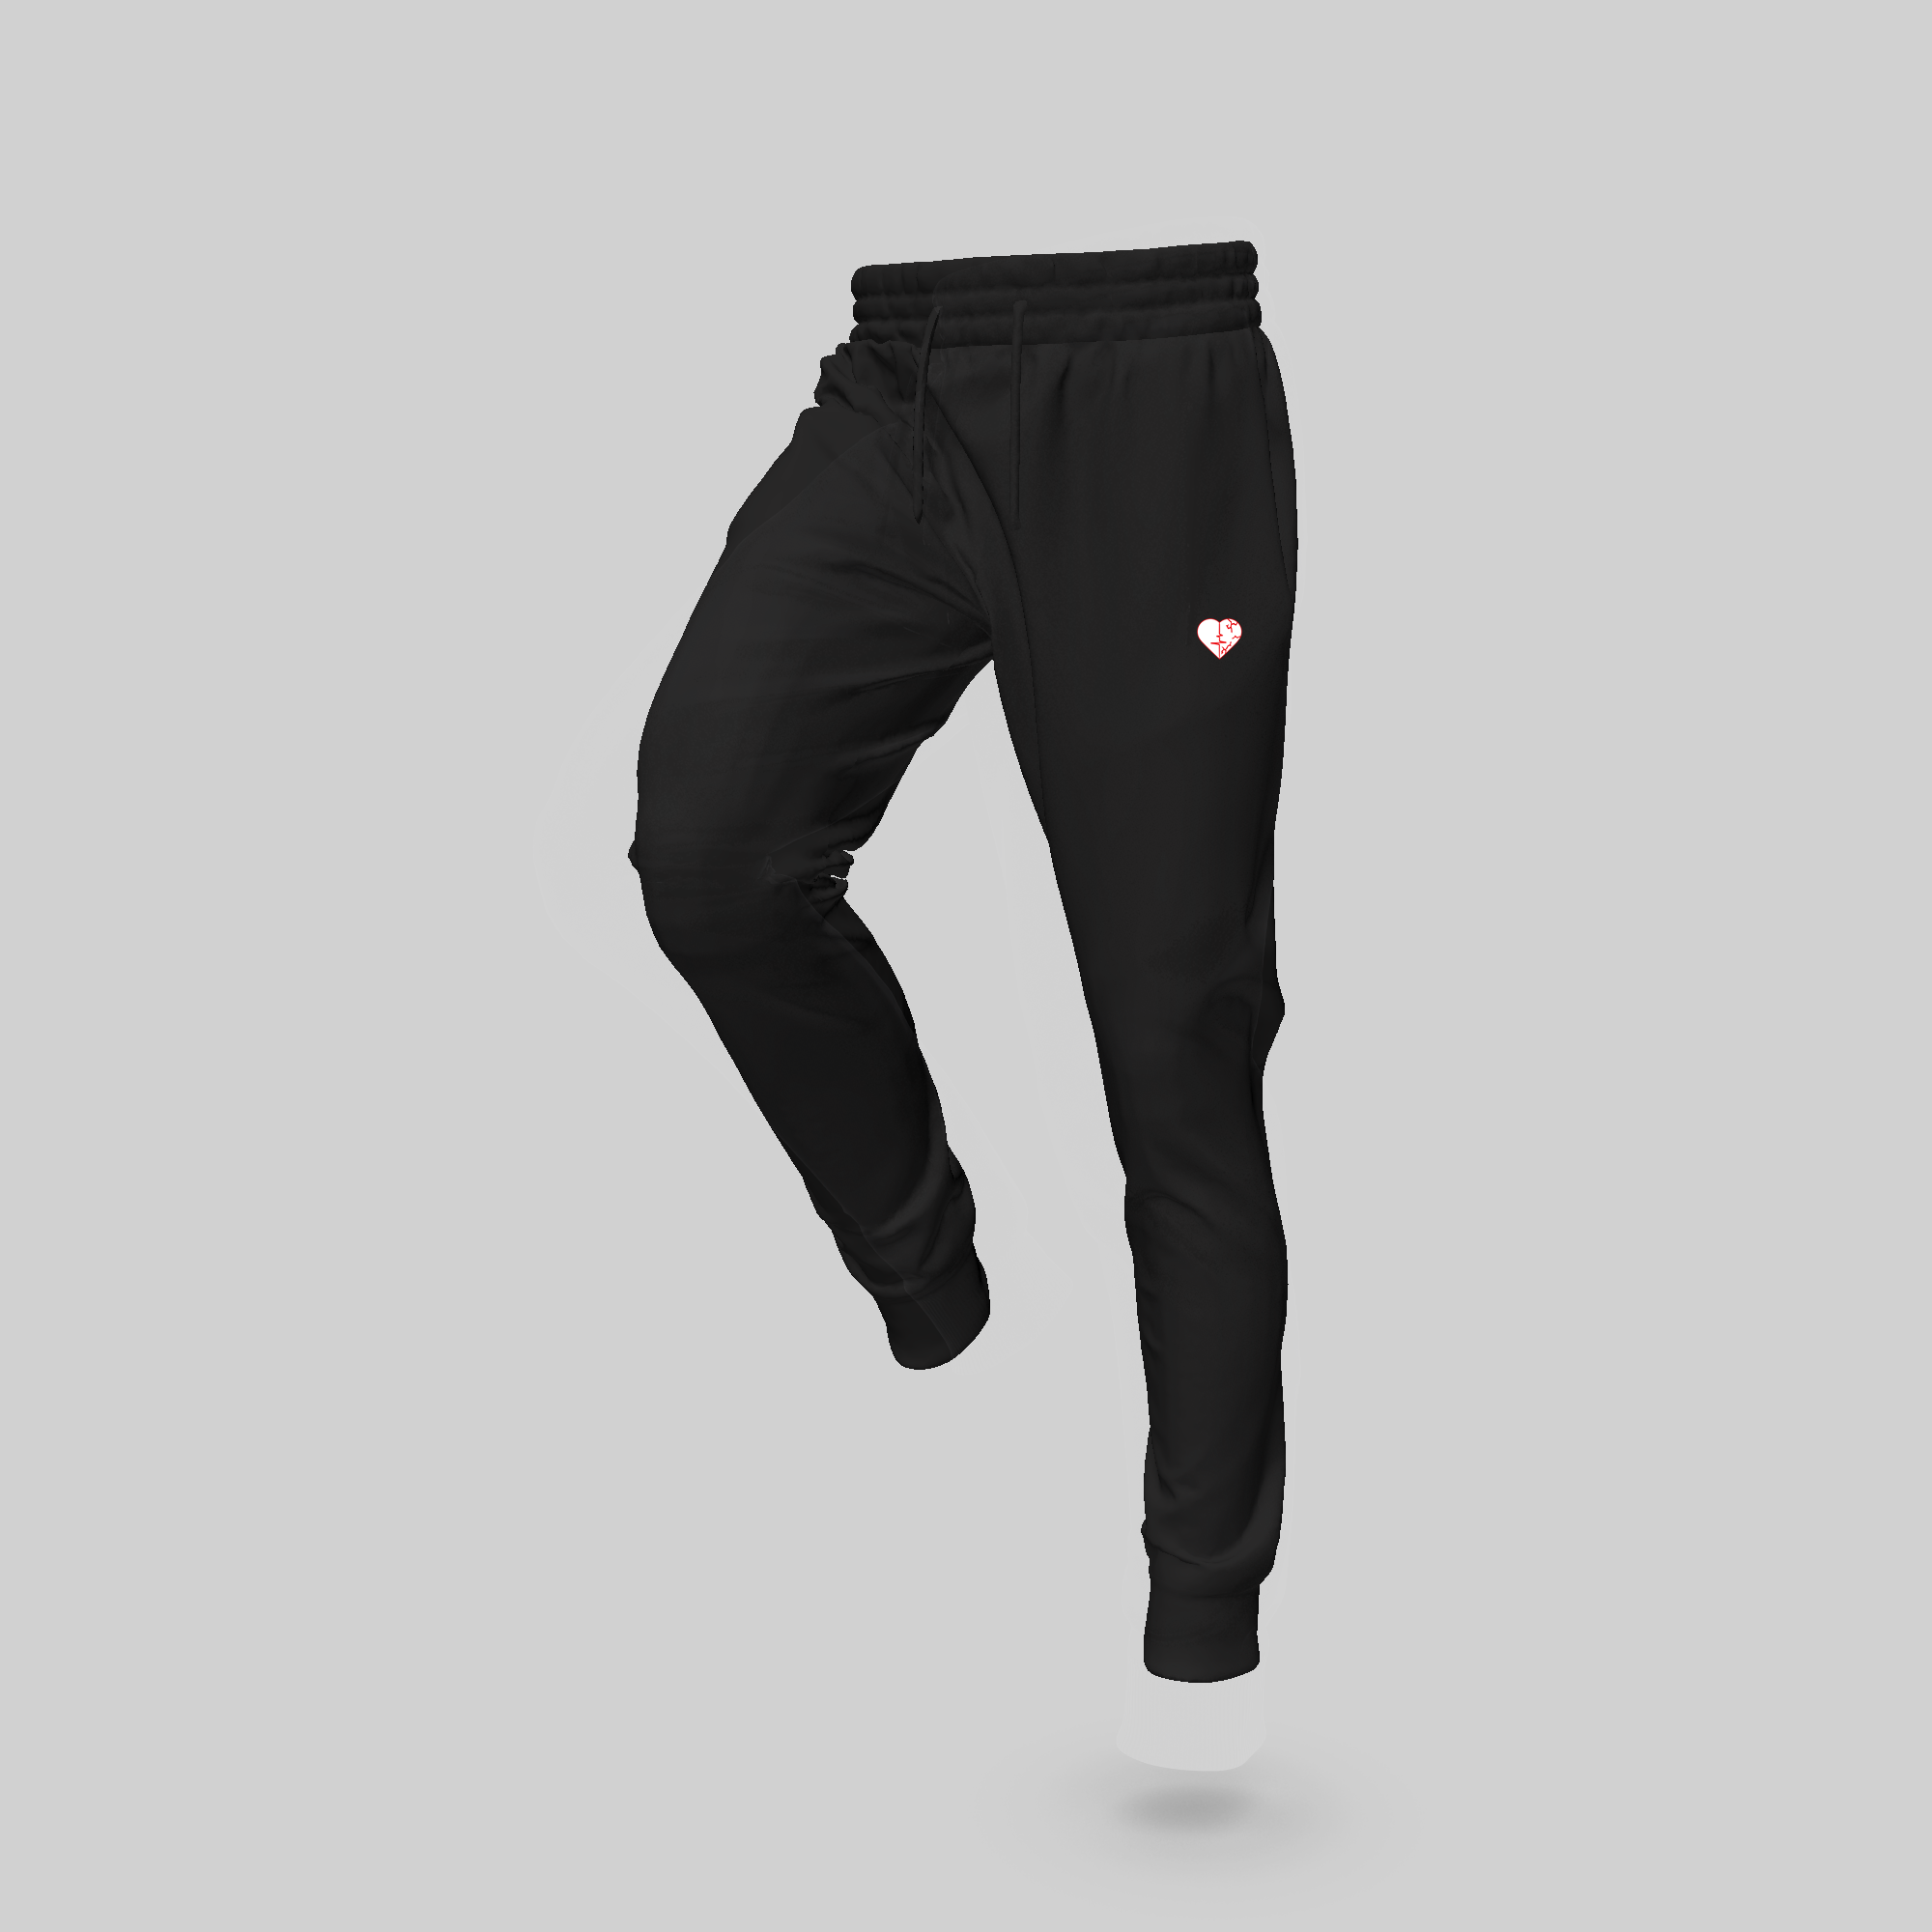 The Heart Sweatpants